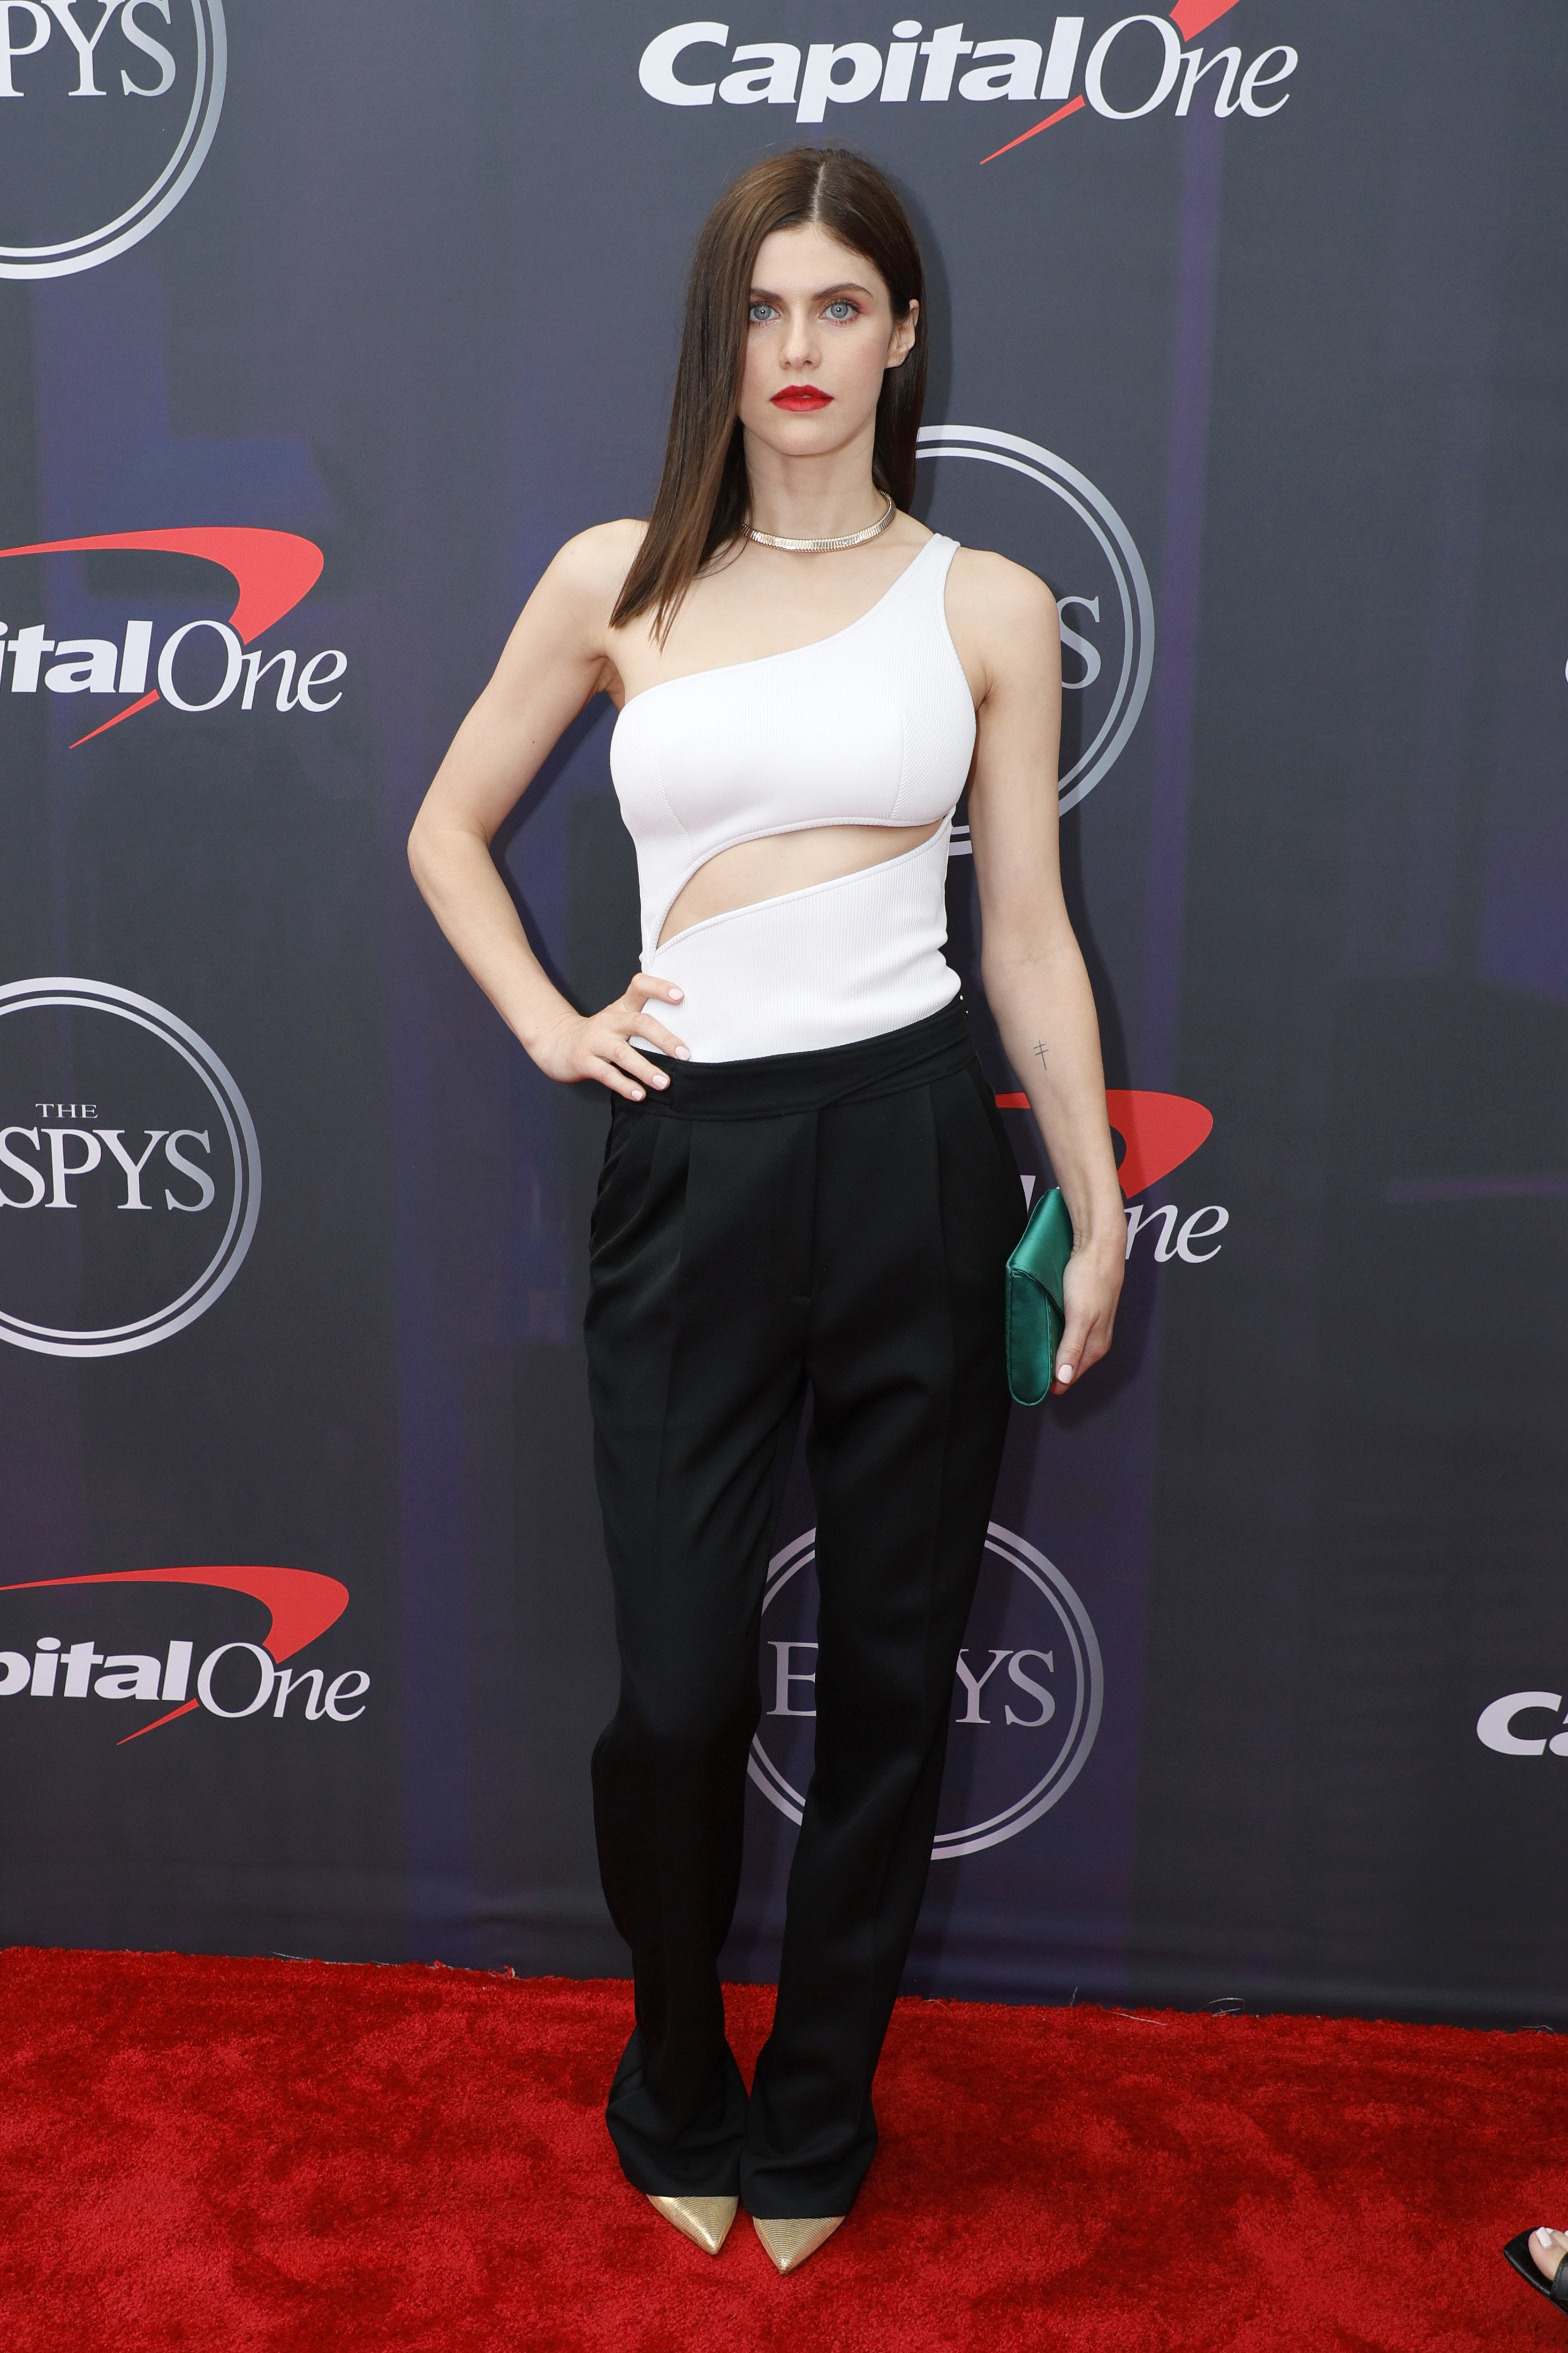 Alexandra wore a one-shoulder two-toned jumpsuit